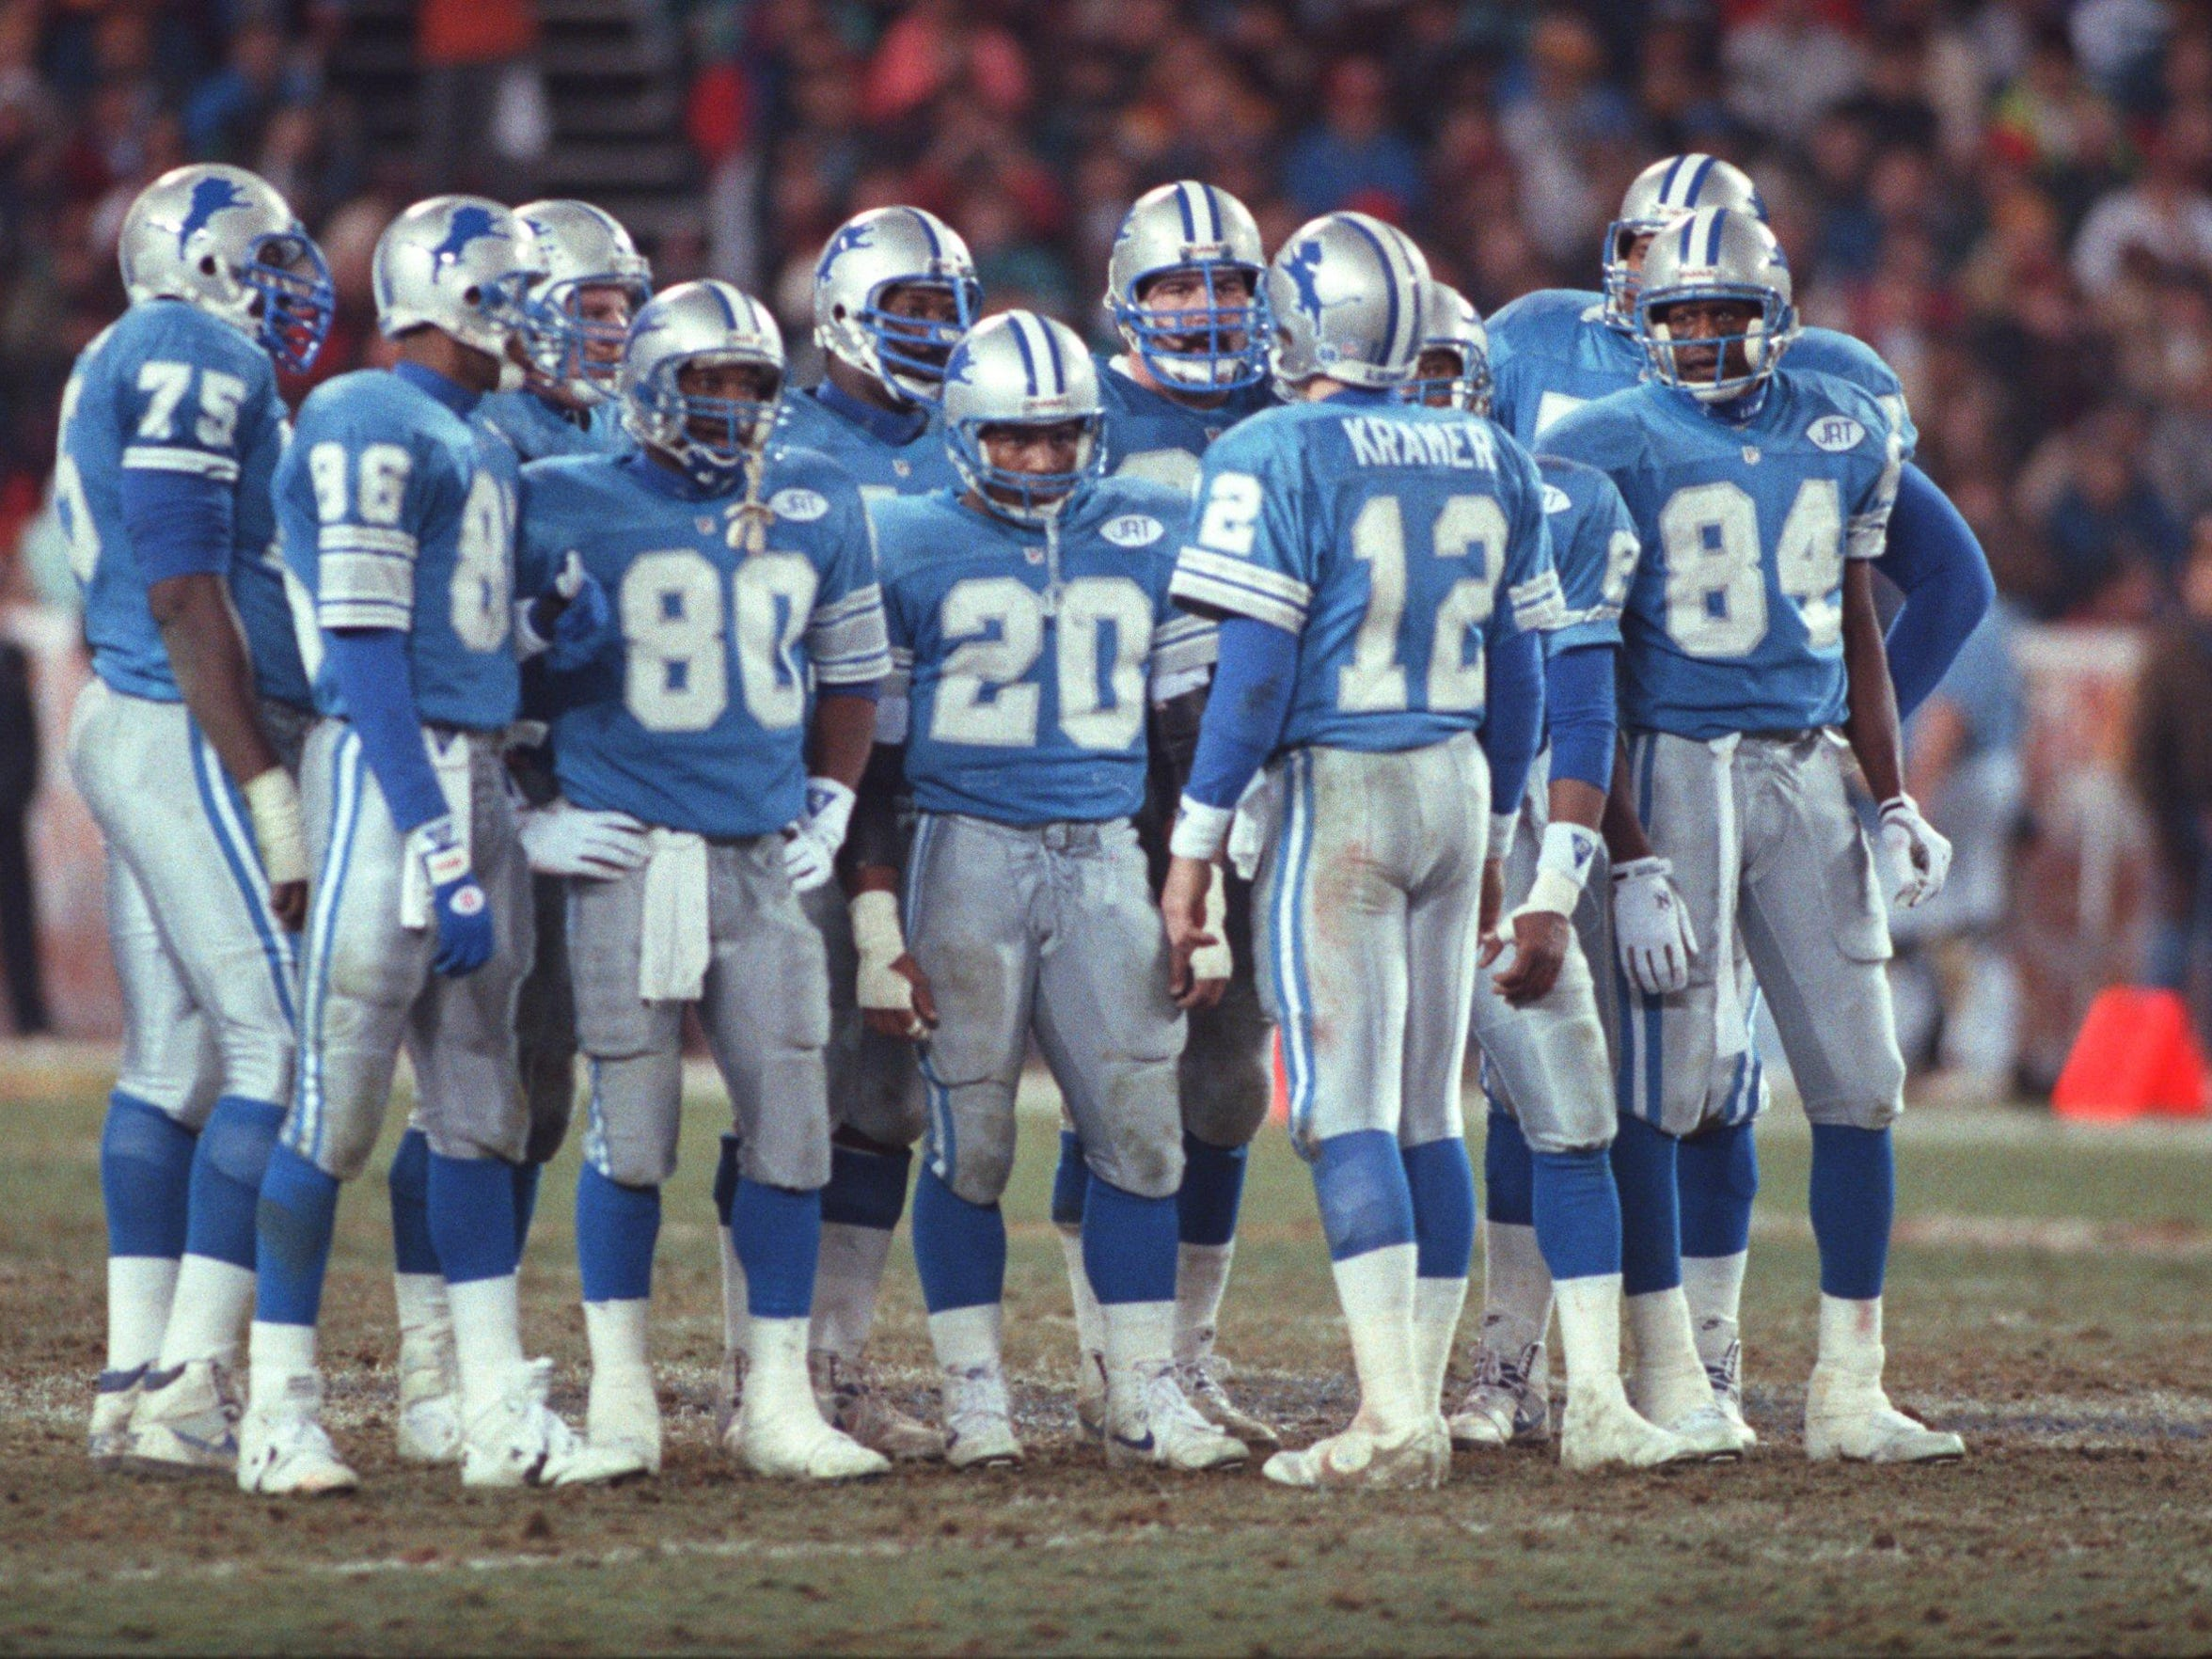 The Lions were no match for the Redskins in the 1991